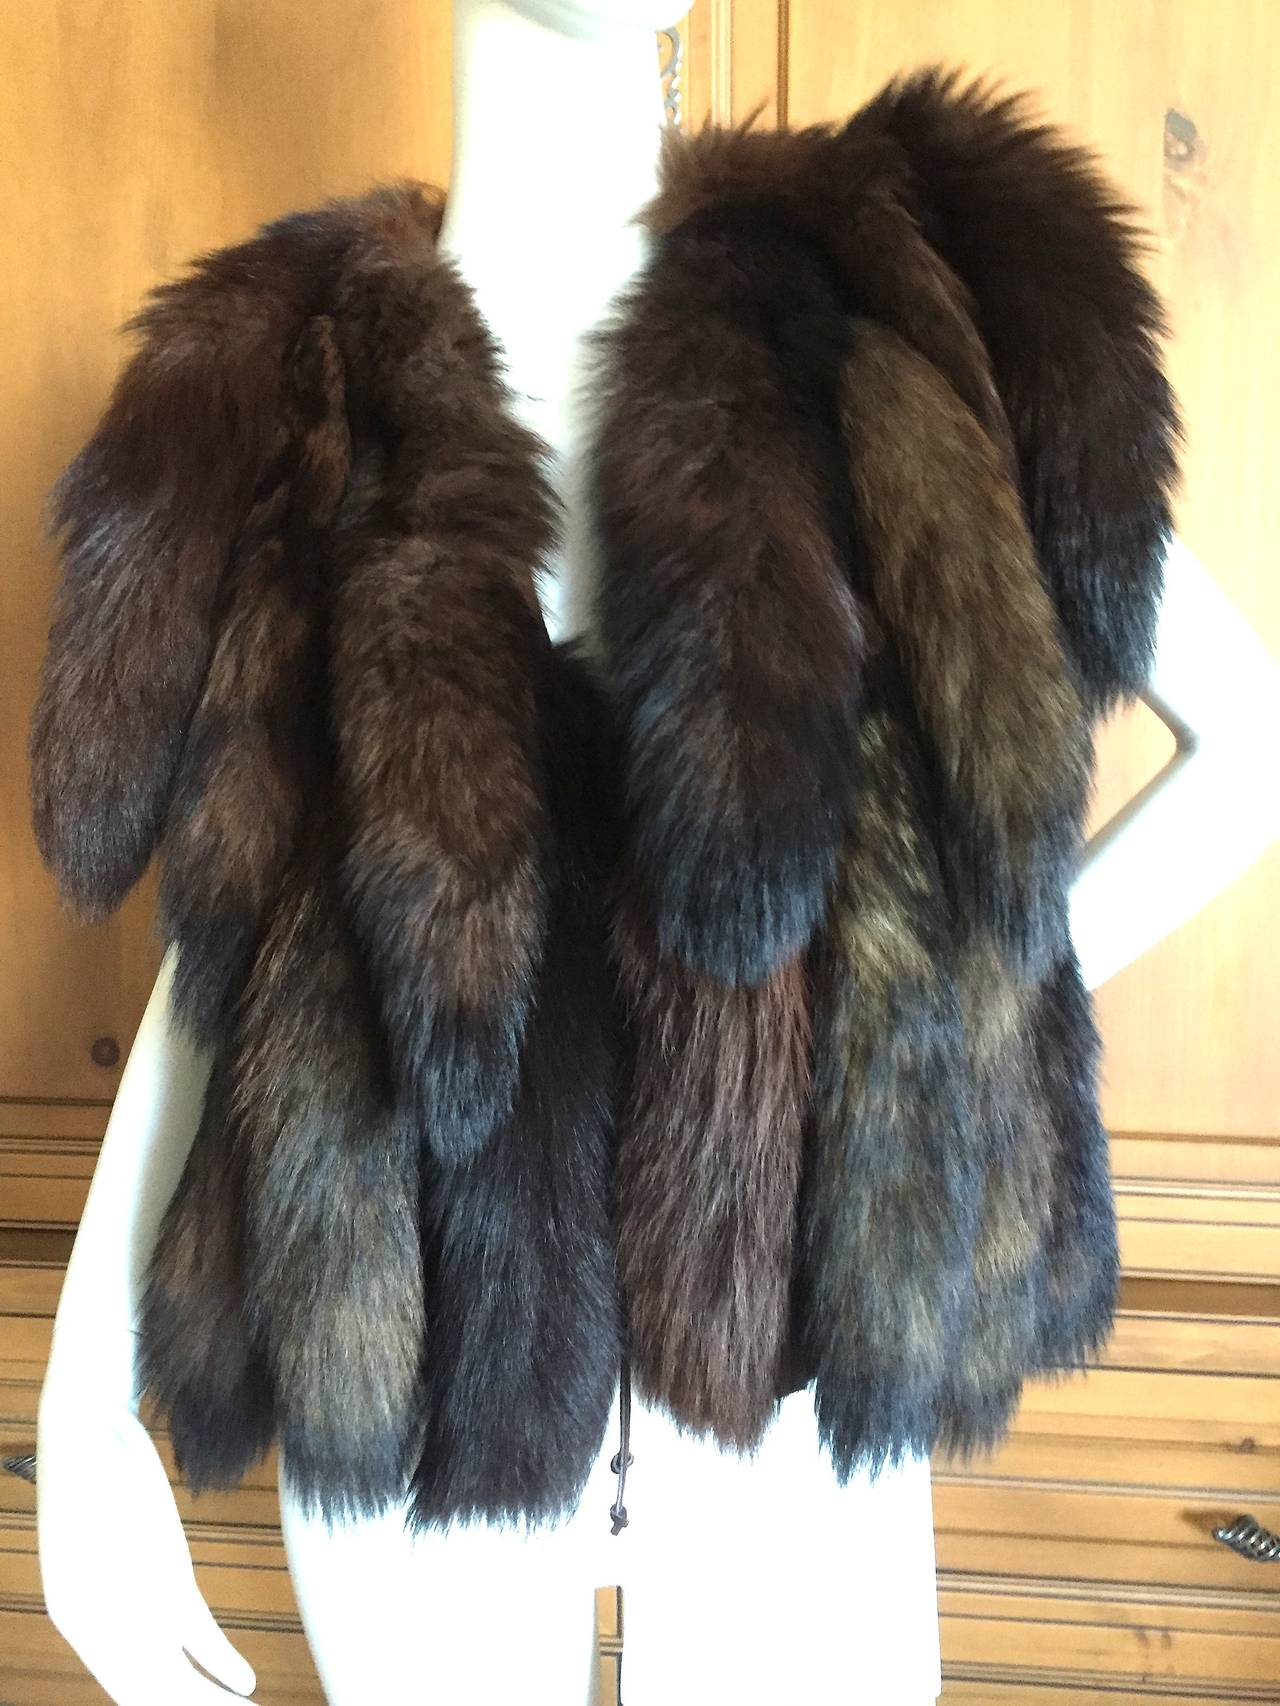 Wonderful vintage fox tail vest from Giorgio Beverly Hills.